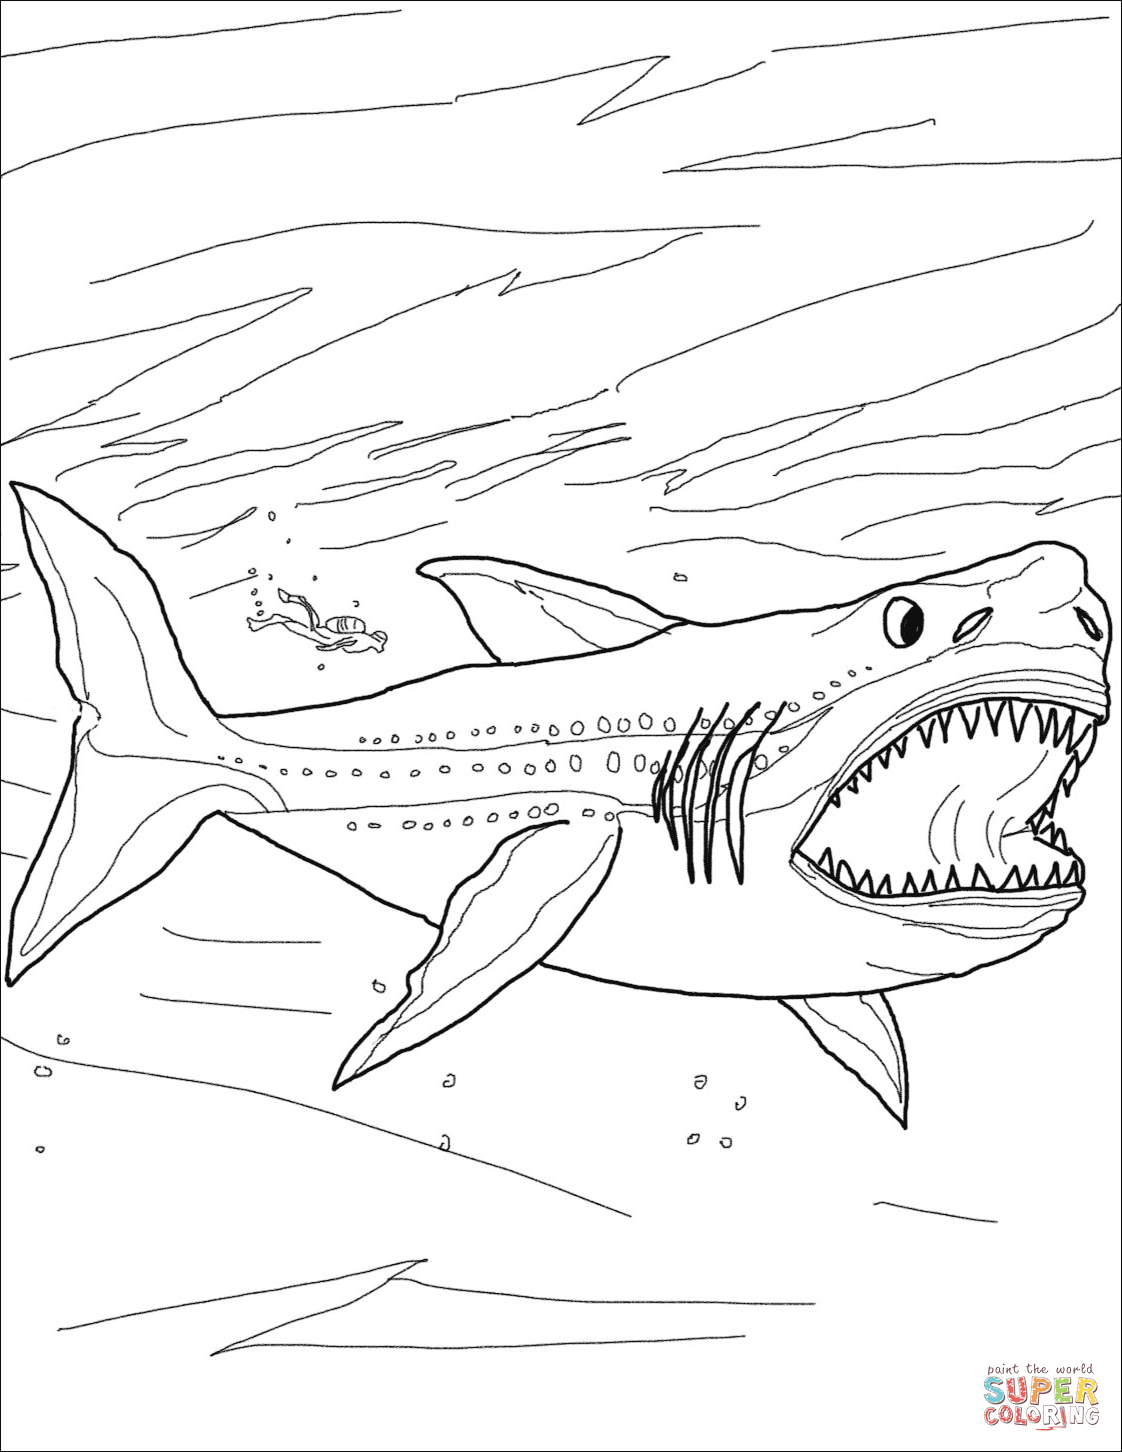 - Megalodon Shark Super Coloring (With Images) Shark Coloring